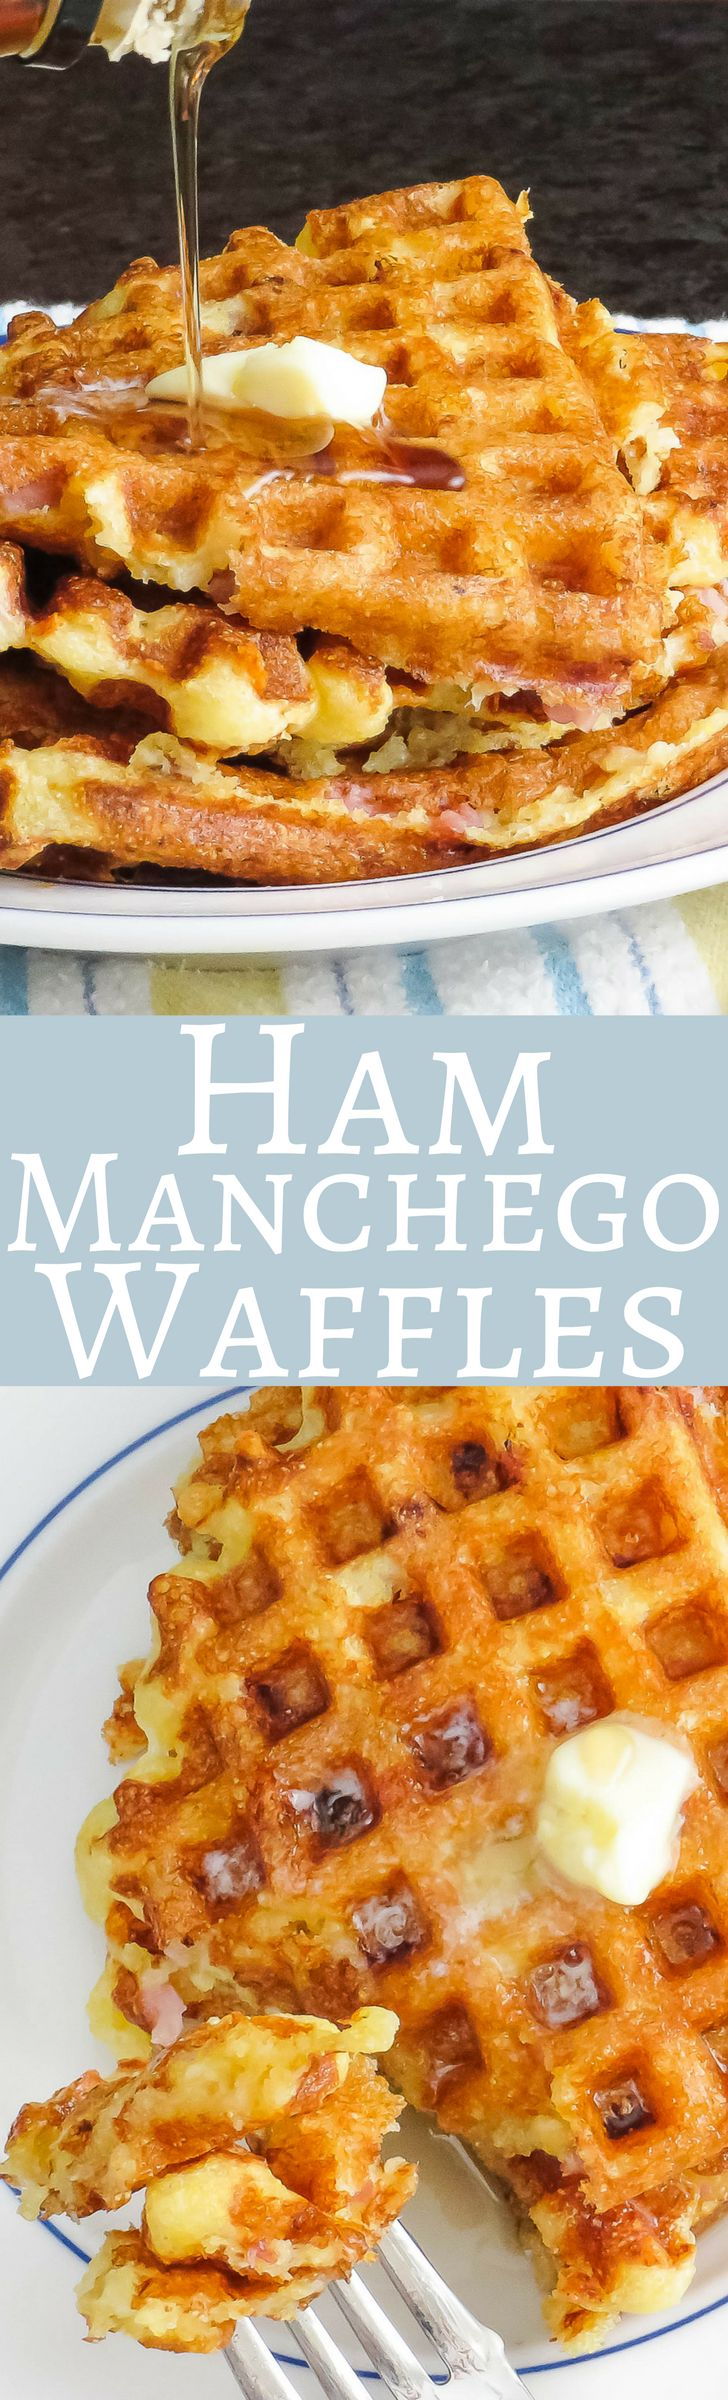 This recipe for savory waffles is the best!  Dotted with smoky ham, hearty cornmeal and savory Manchego cheese, they're great for a weekend breakfast!